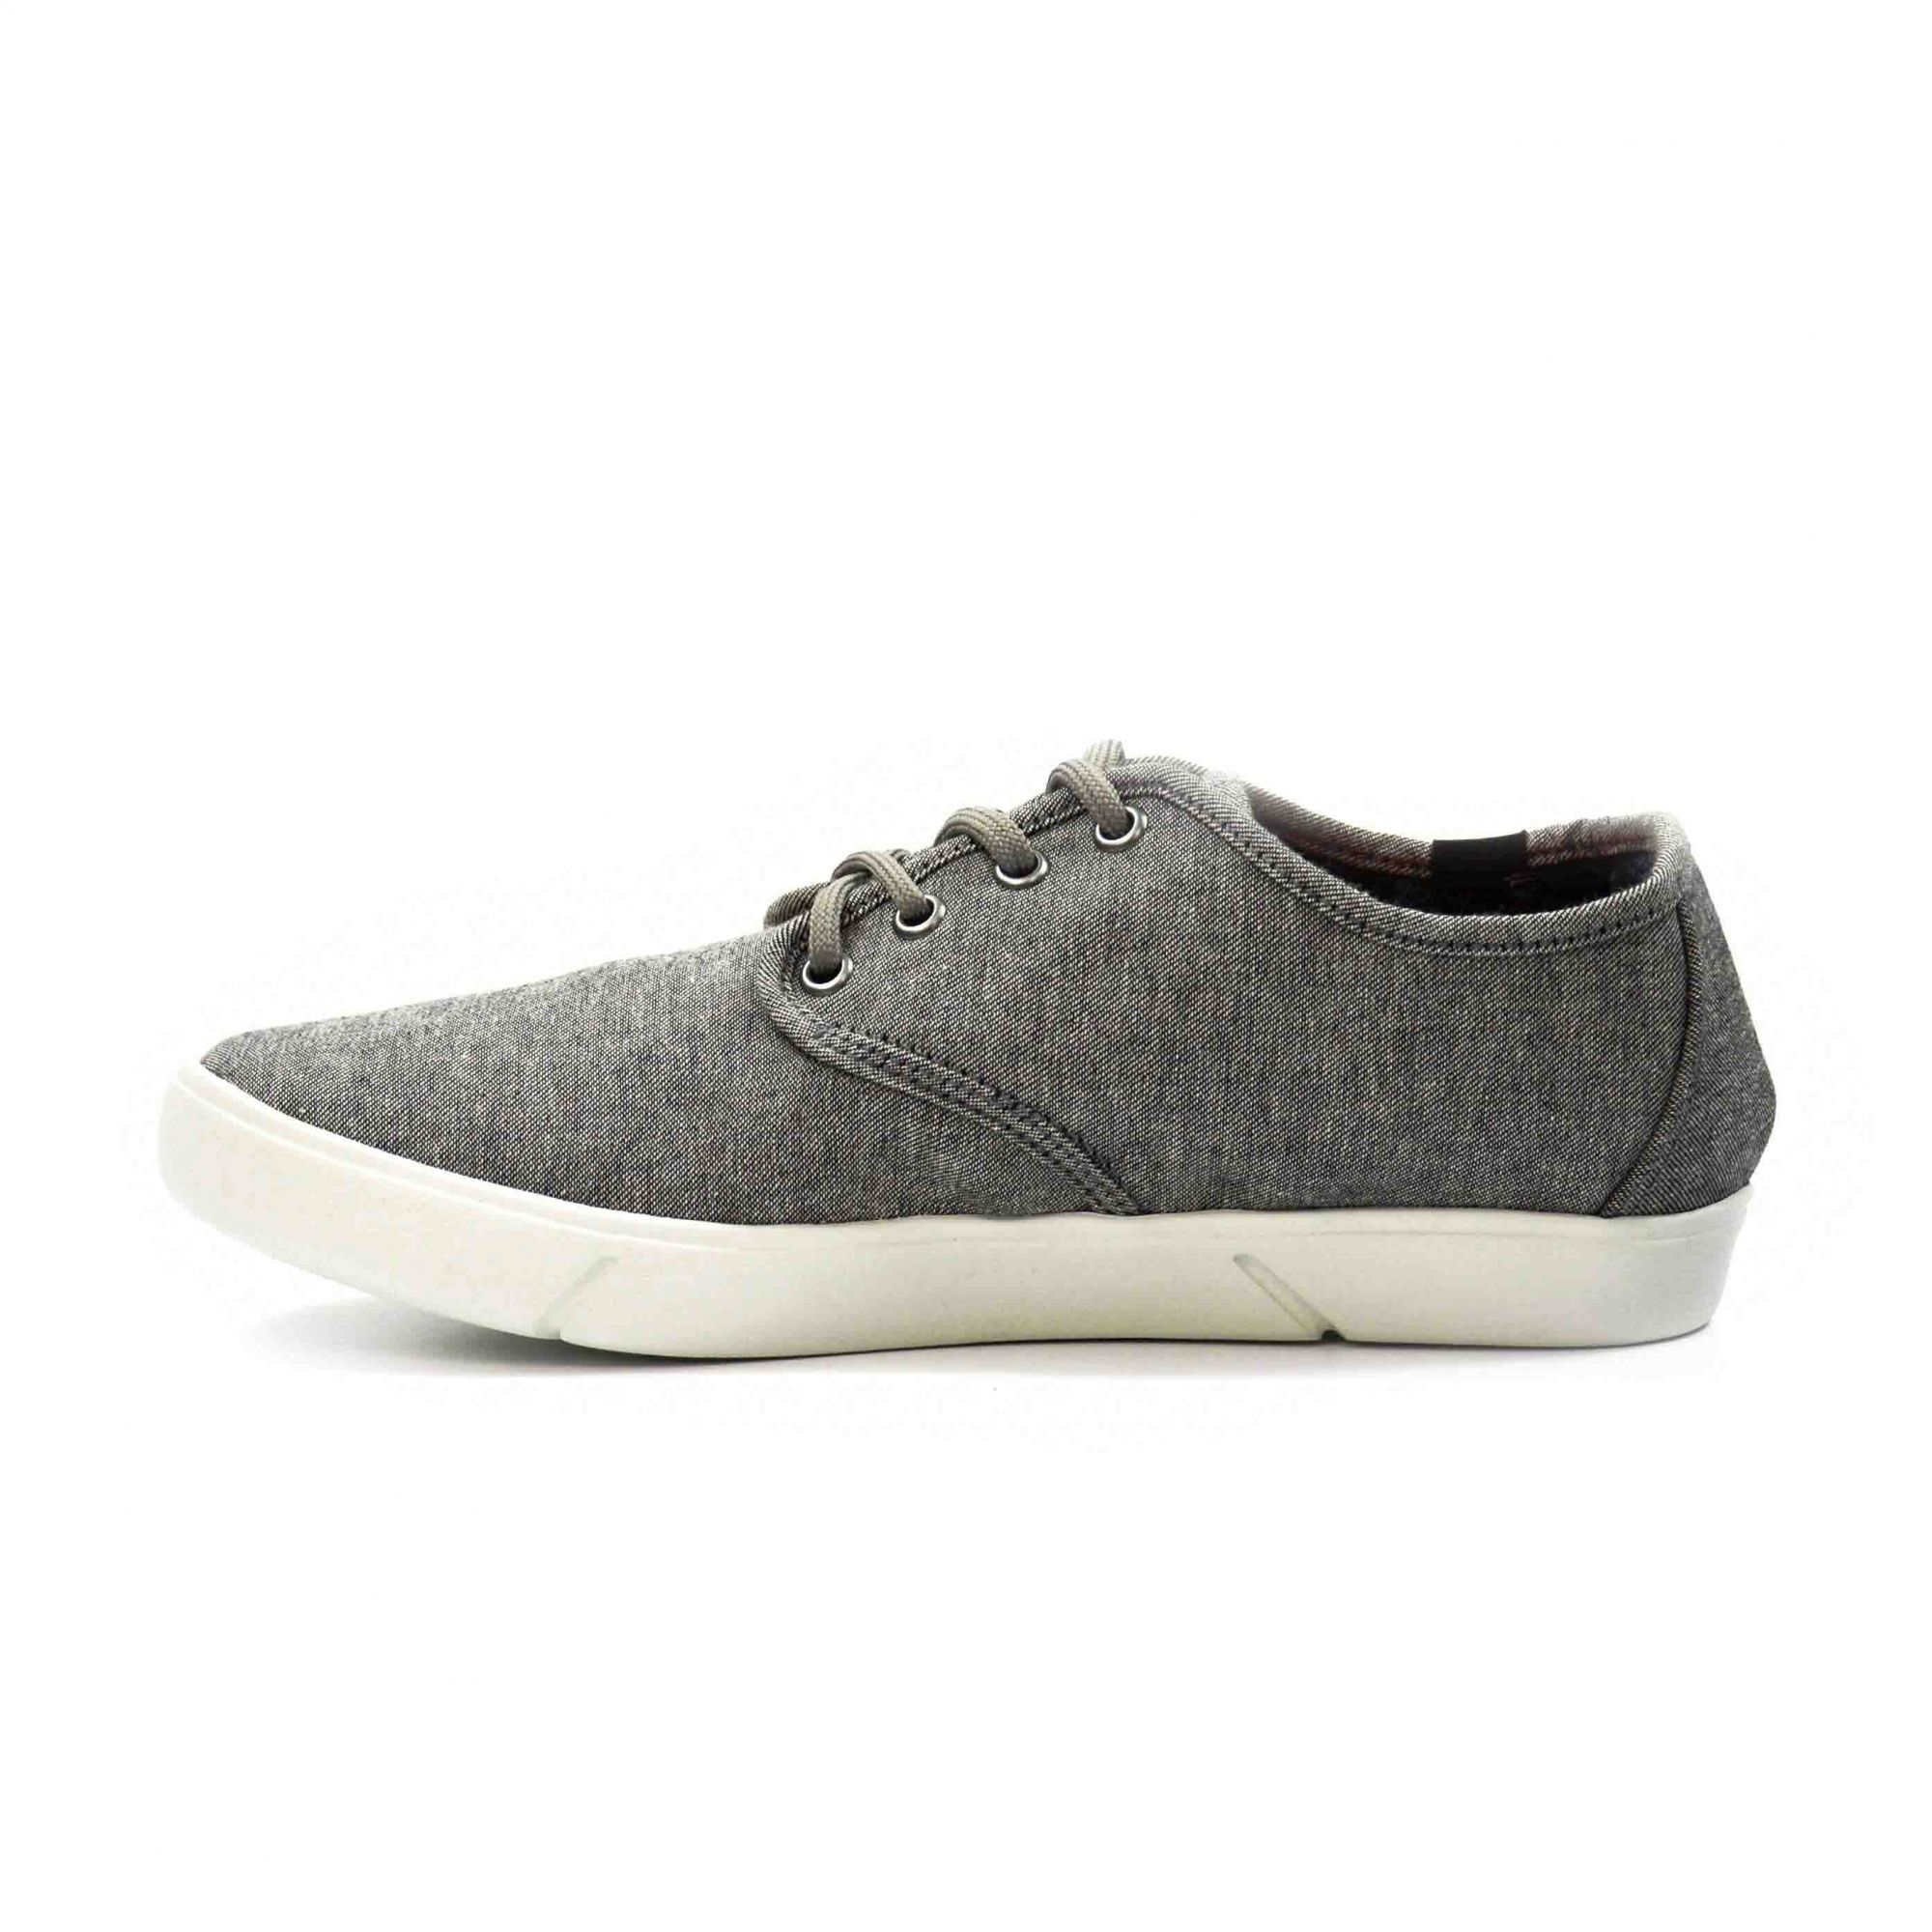 TÊNIS MASCULINO CASUAL CINZA COCA-COLA SHOES JHONY EASE - 017631